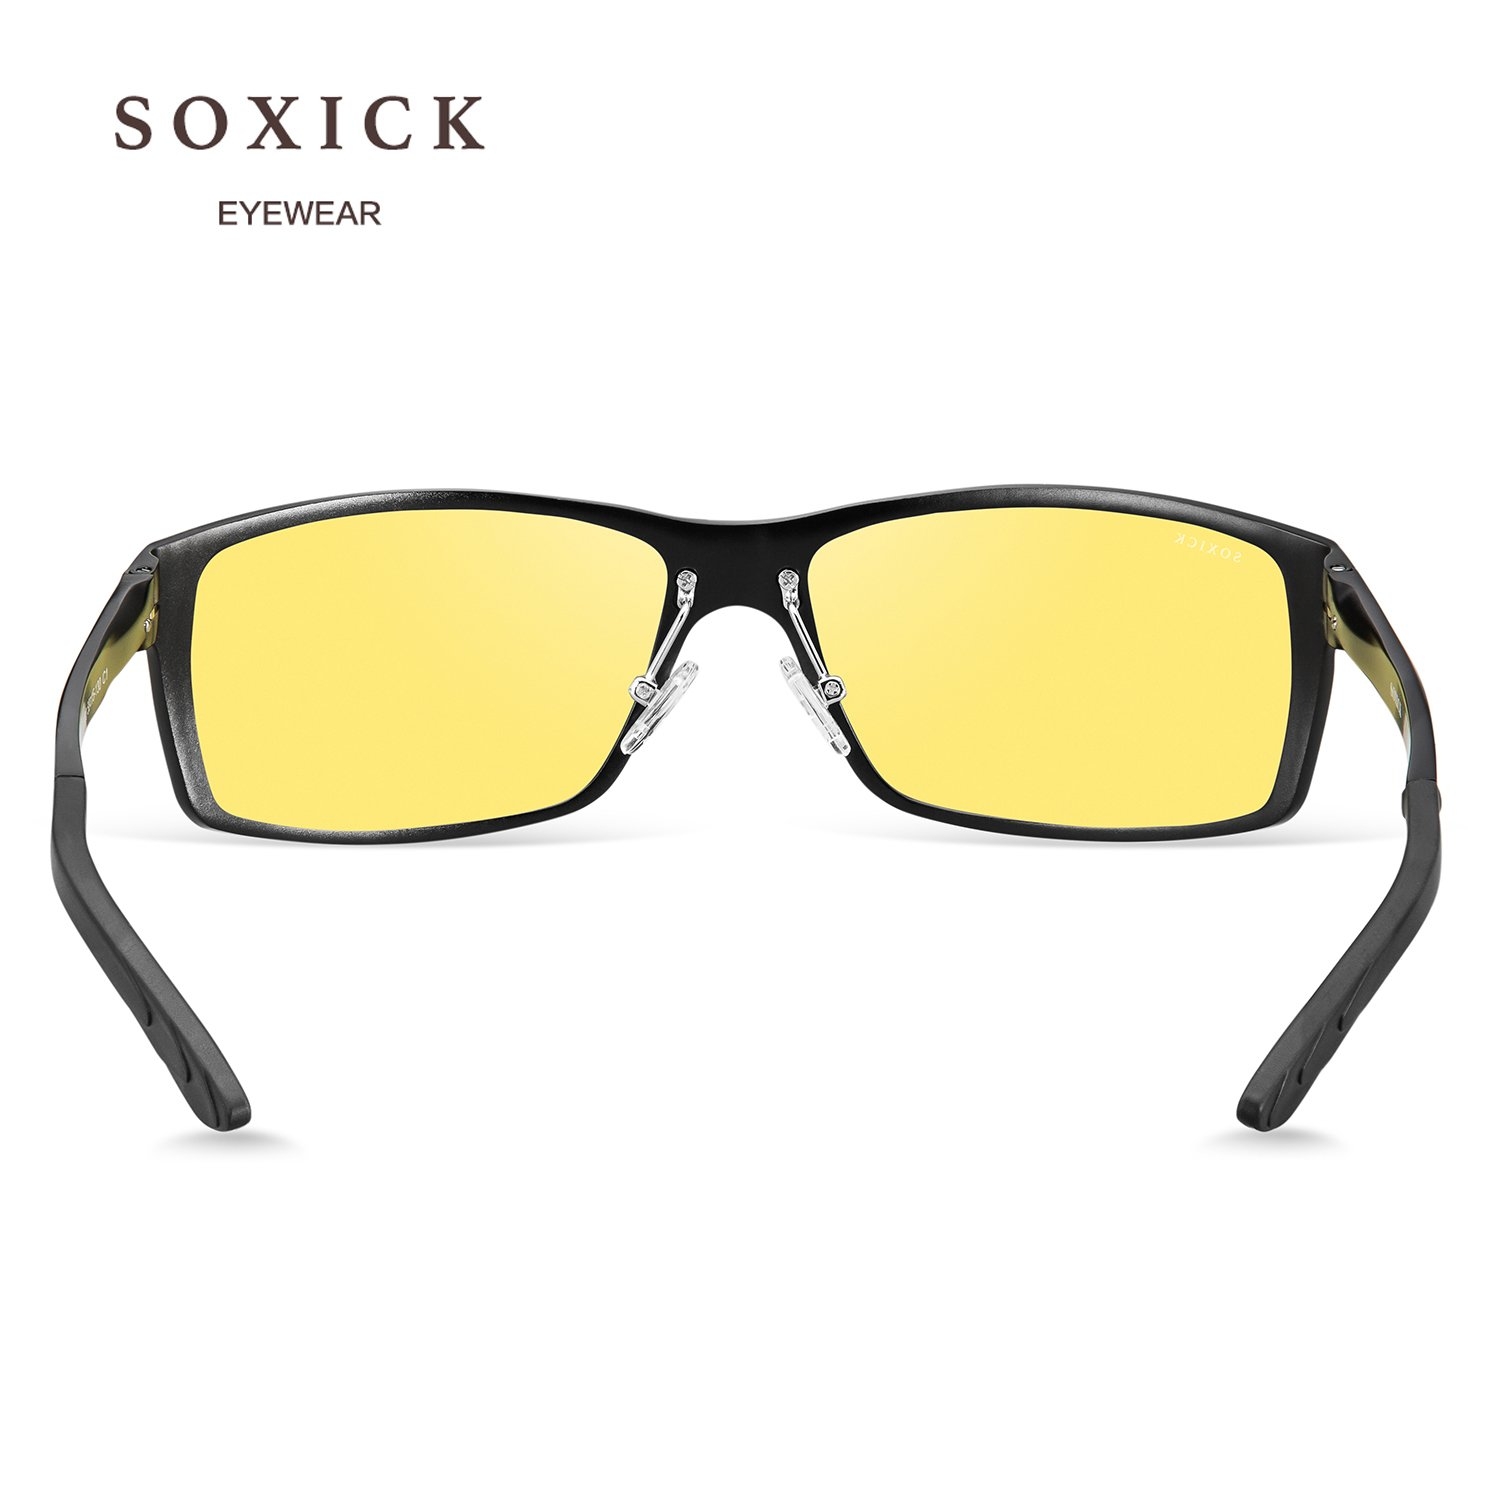 SOXICK 2018 New Style Night Driving Glasses - Anti-glare HD Vision - Safety Night Vision glasses for Men and Women (3) by SOXICK (Image #6)